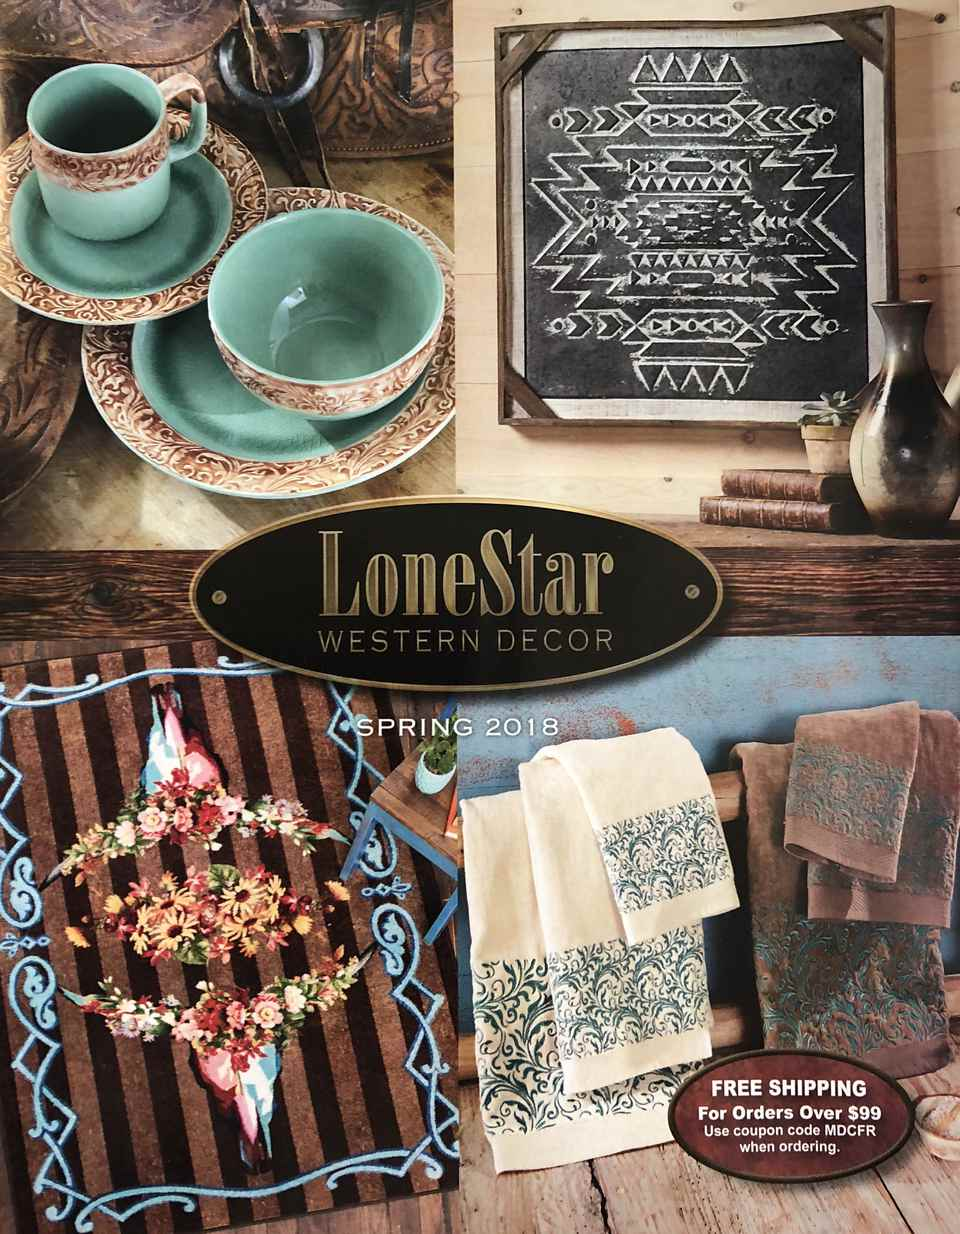 The cover of the 2018 LoneStar Western Decor catalog